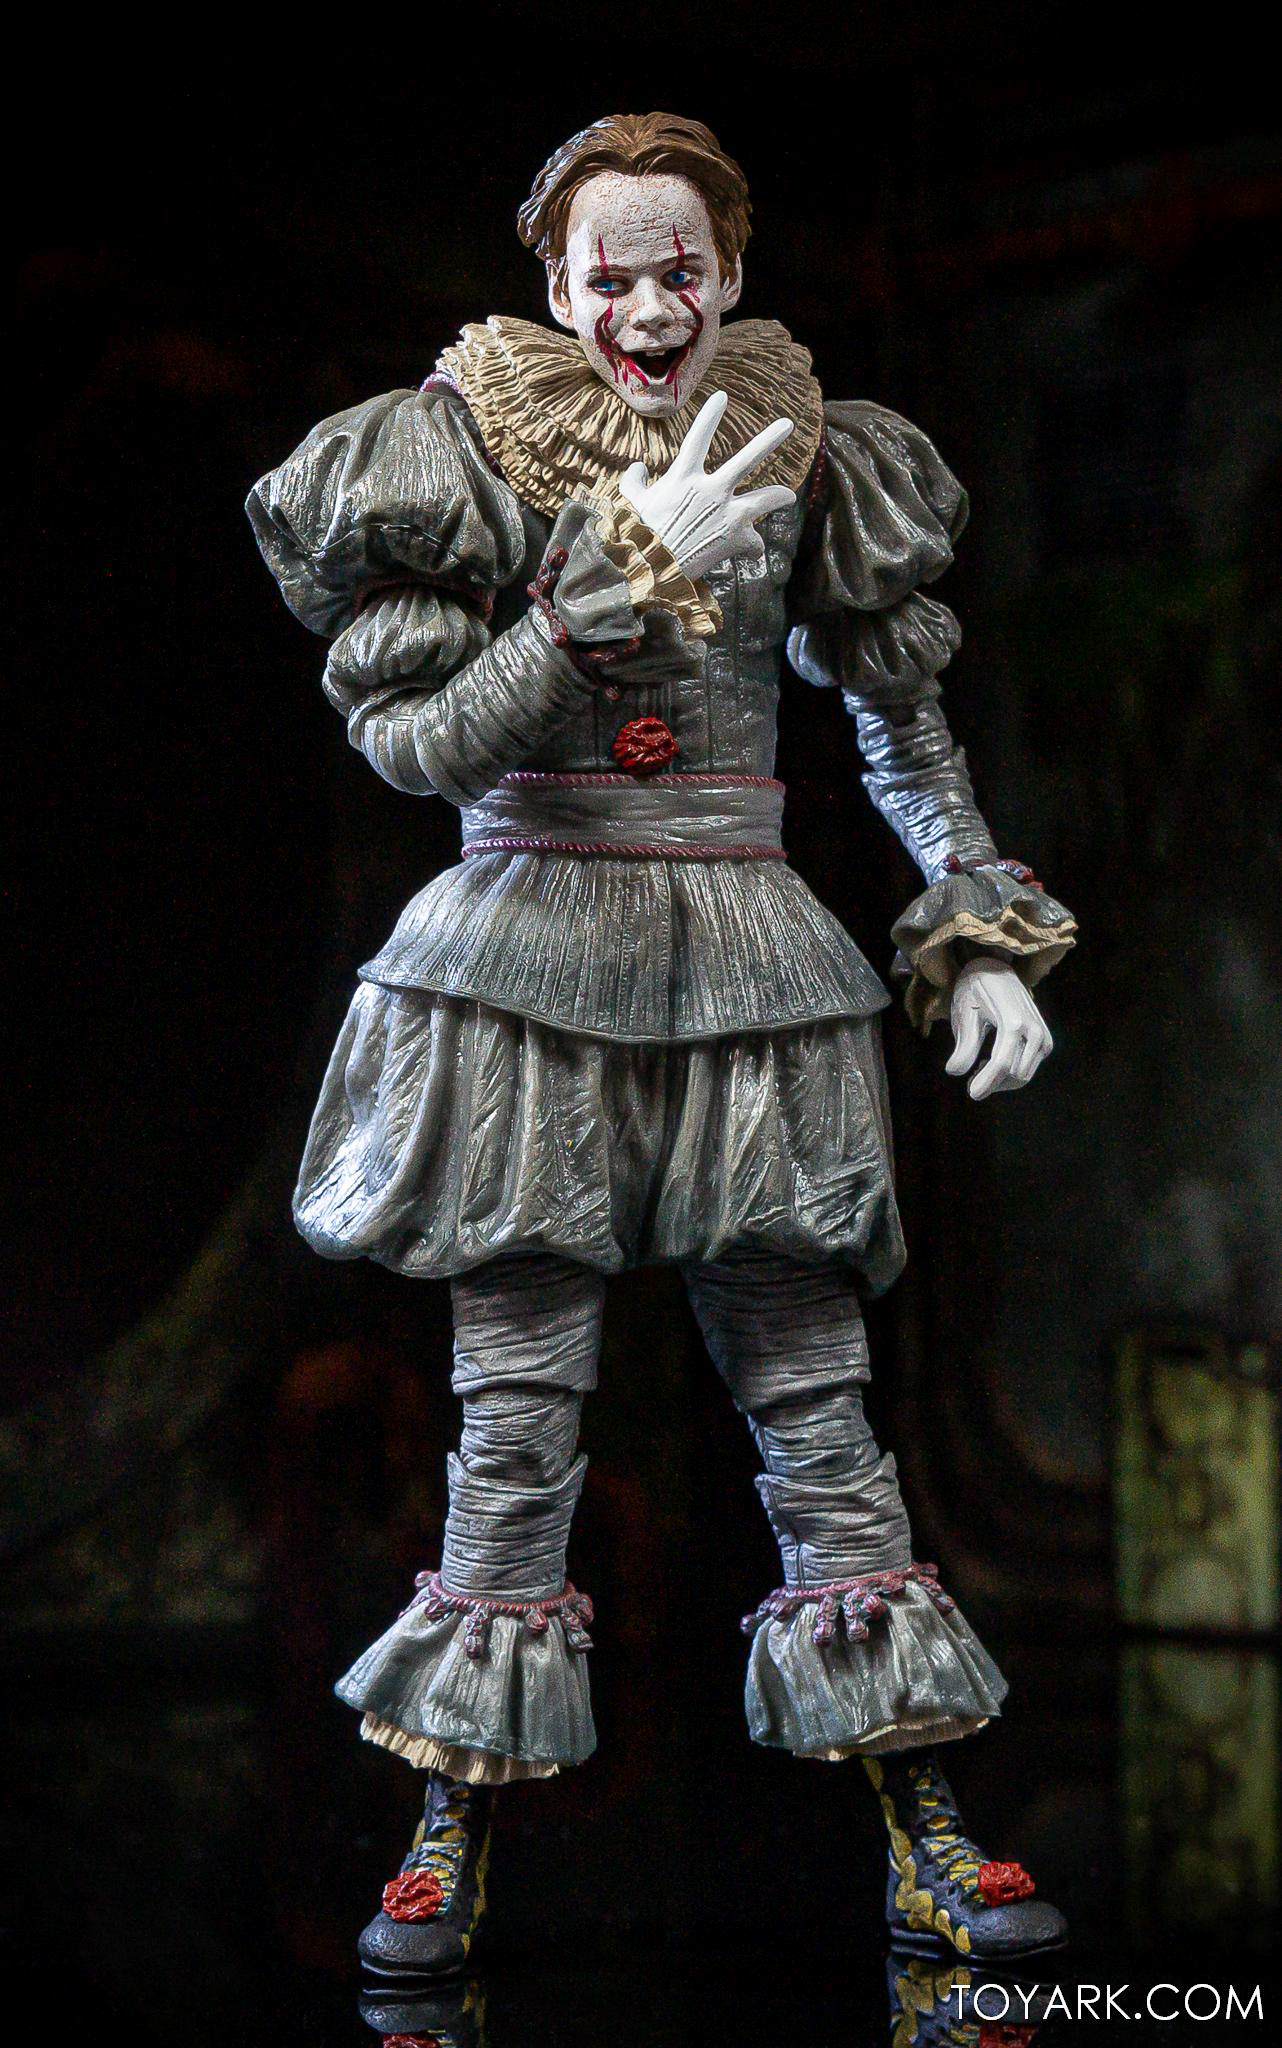 https://news.toyark.com/wp-content/uploads/sites/4/2020/06/NECA-IT-2-Ultimate-Pennywise-029.jpg